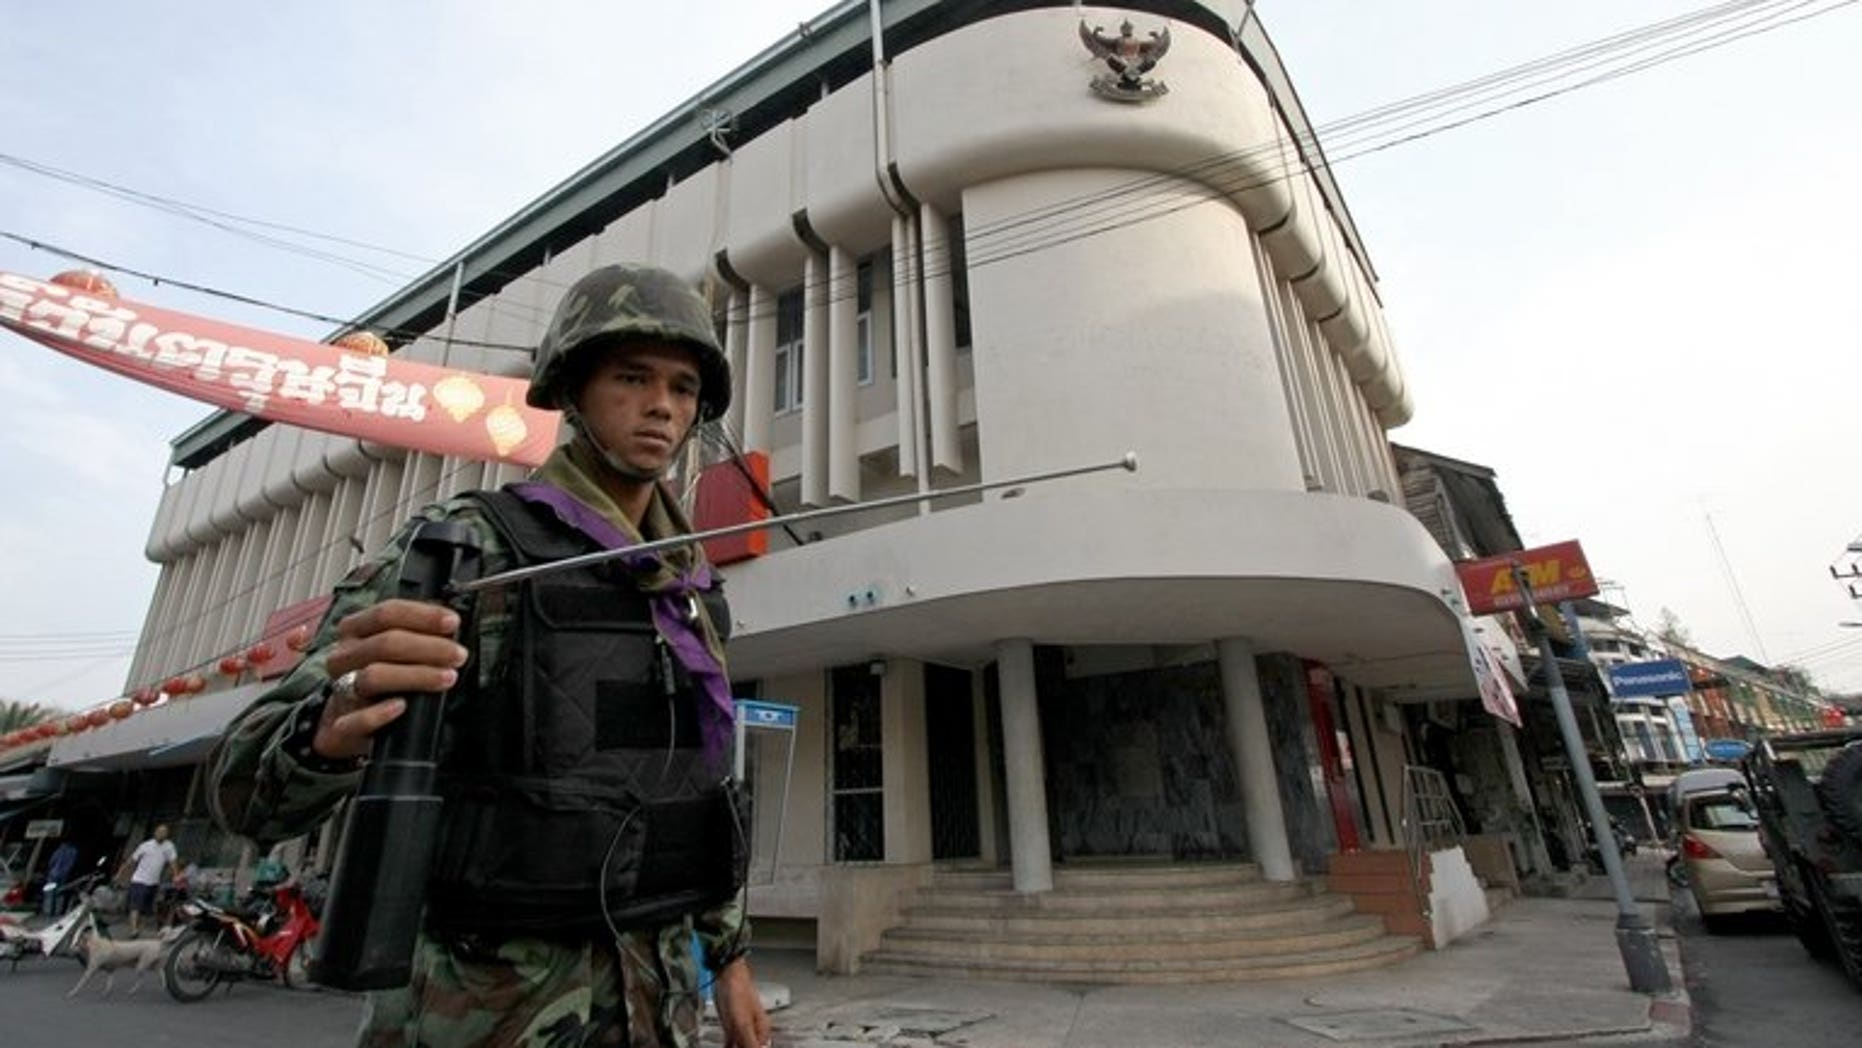 """This picture taken on March 2, 2010 shows a Thai soldier using a GT200 detector as he patrols the streets of Yala, in Thailand's restive south. A British businessman who sold fake bomb detectors worldwide was jailed for seven years on Tuesday, with his judge branding the devices """"useless""""."""